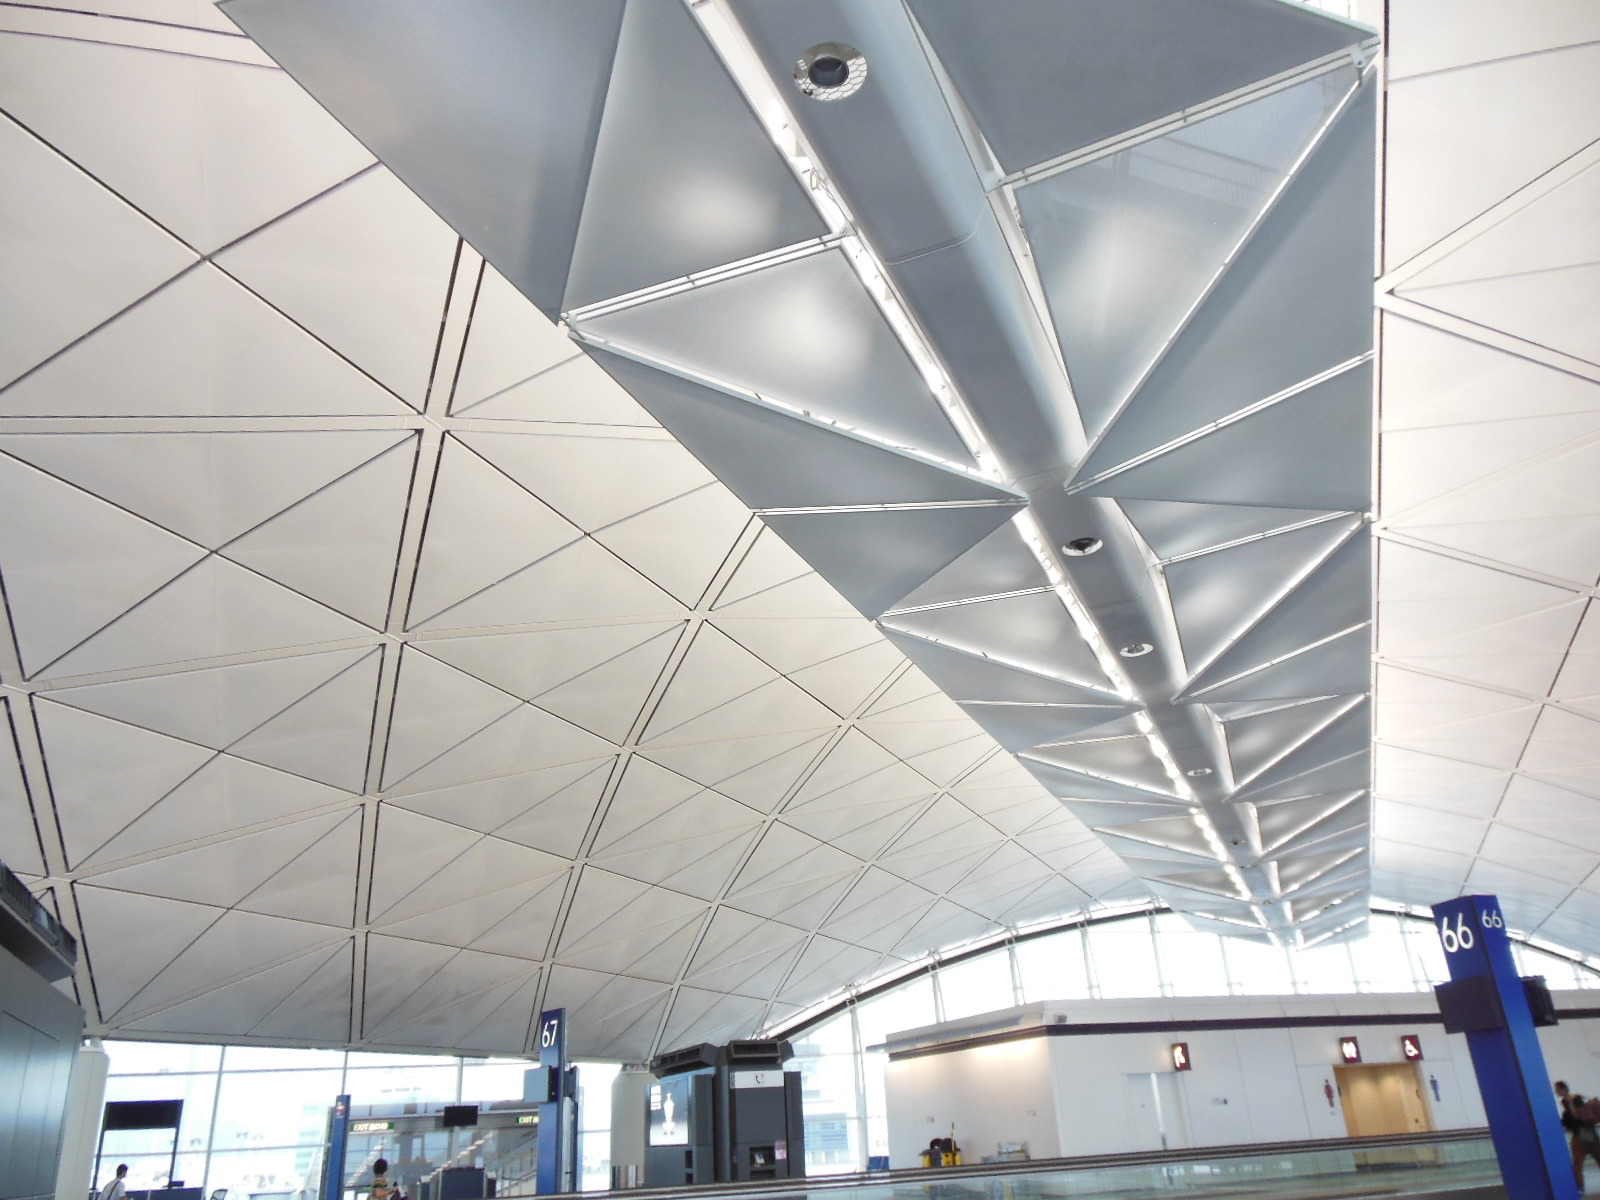 How to spend a long transit time at Hong Kong International Airport (HKIA)